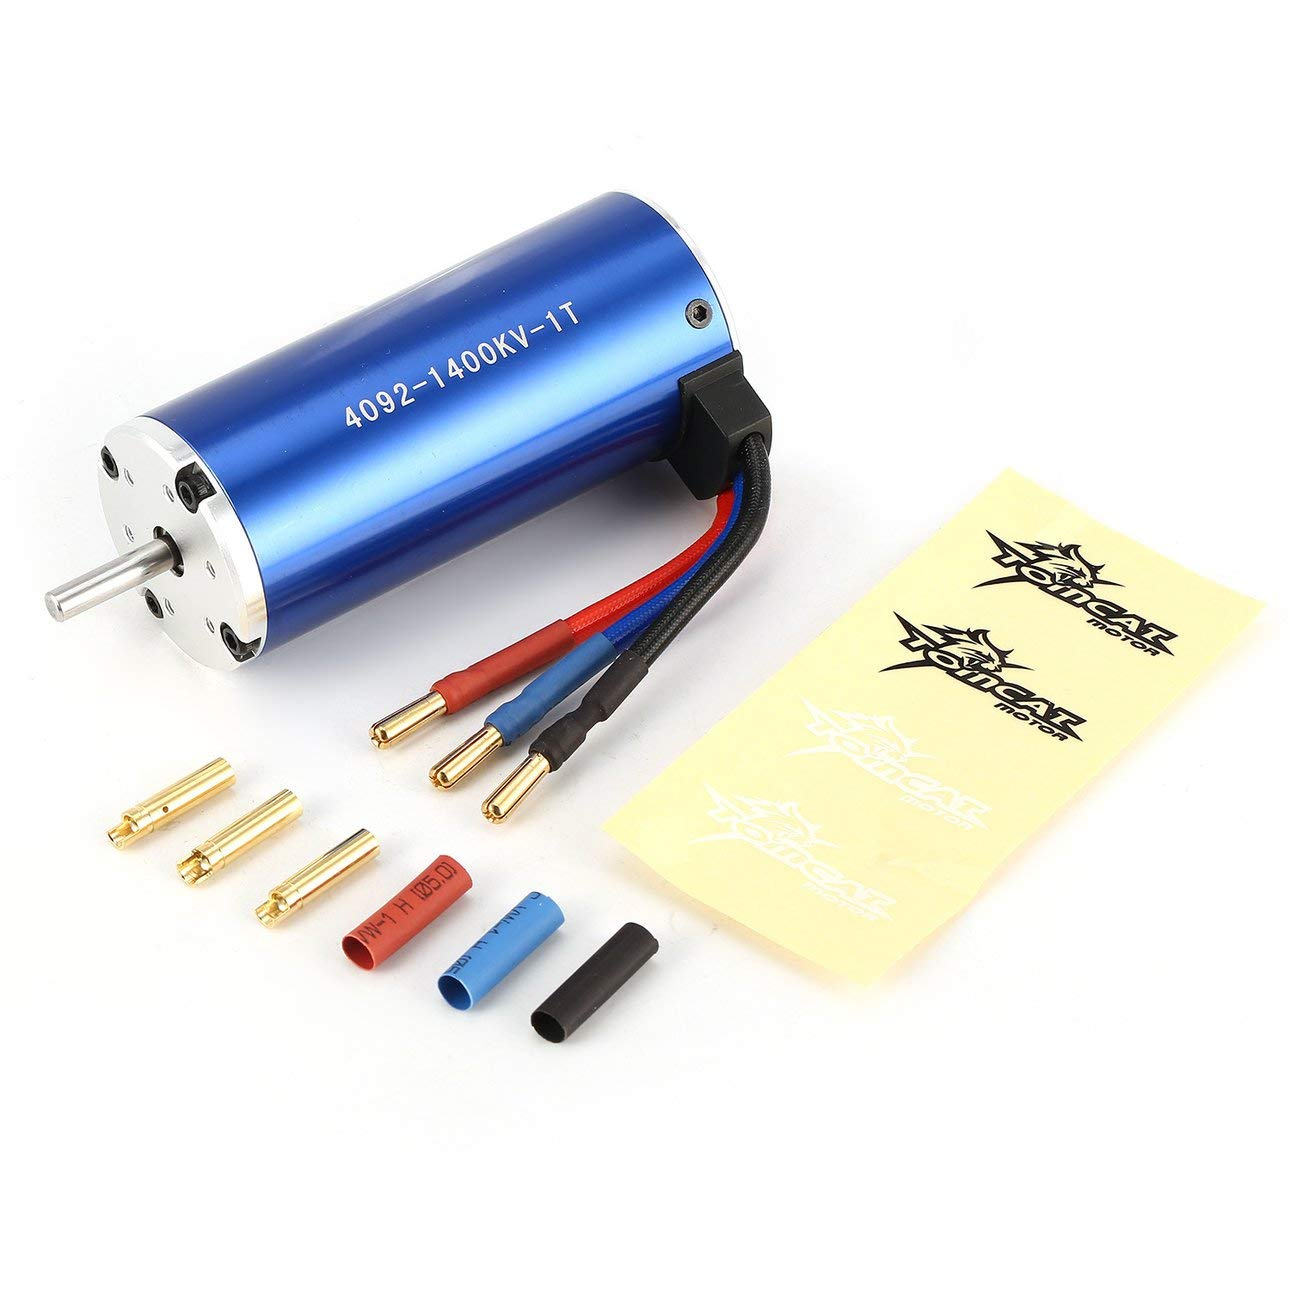 Liobaba TC-CY 4092 1T KV1400 5mm Sensorless Brushless Motor 1/8 Bigfoot RC Car Model Spare Parts Accessories Component